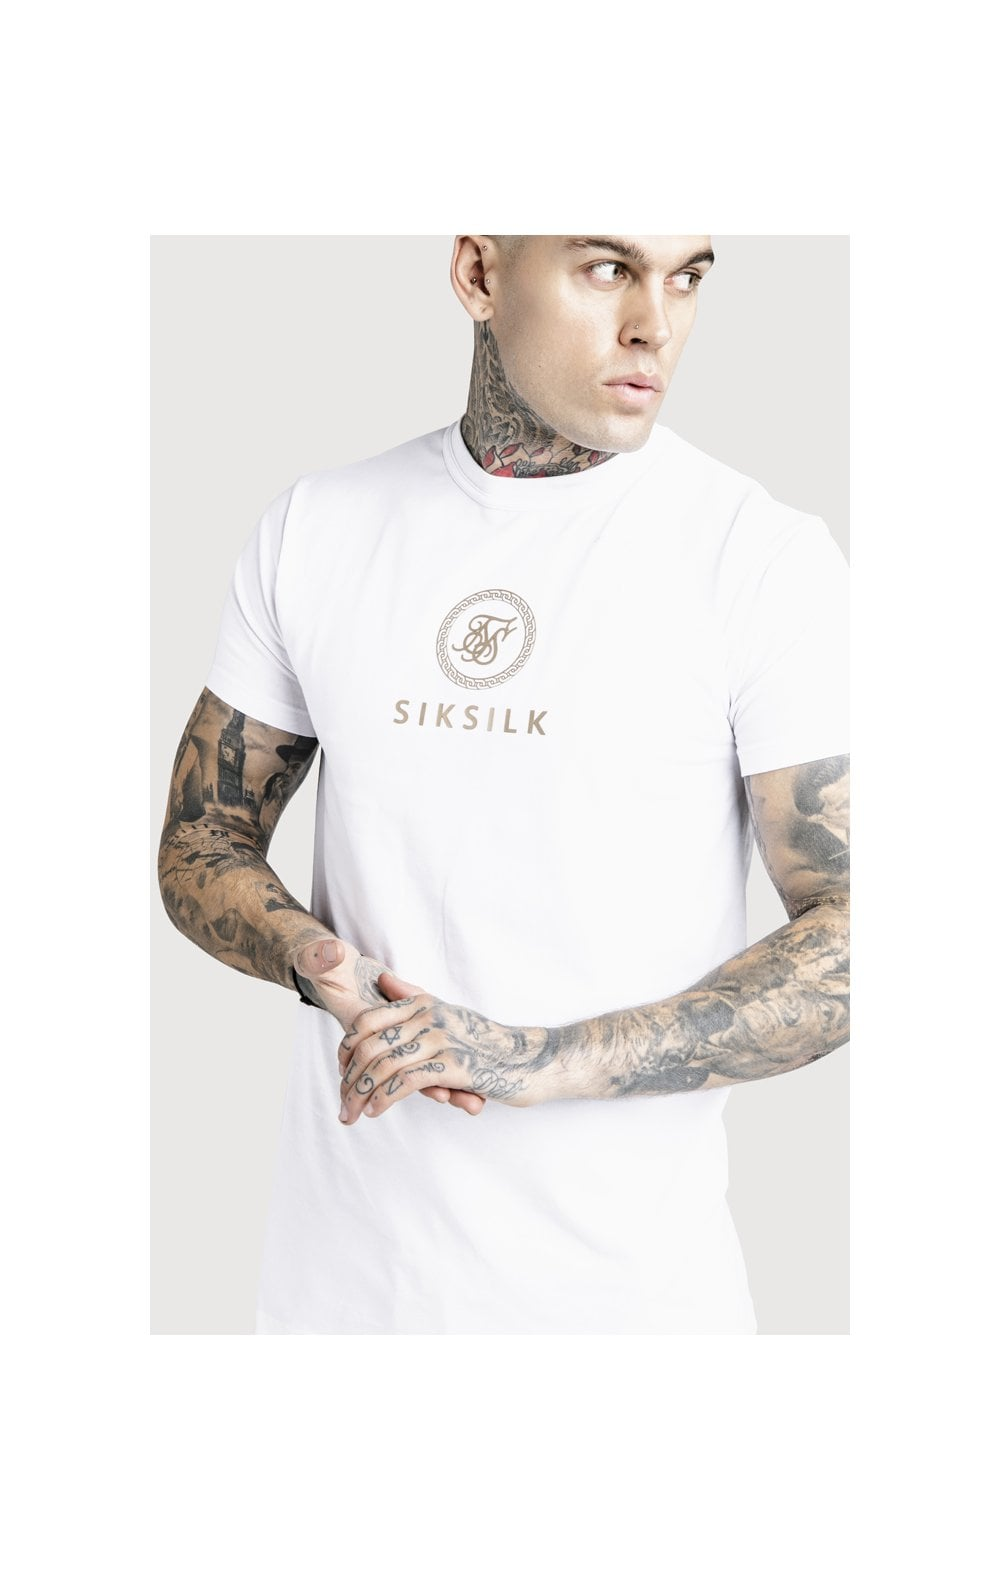 SikSilk x Dani Alves Relaxed Fit Box Tee - White